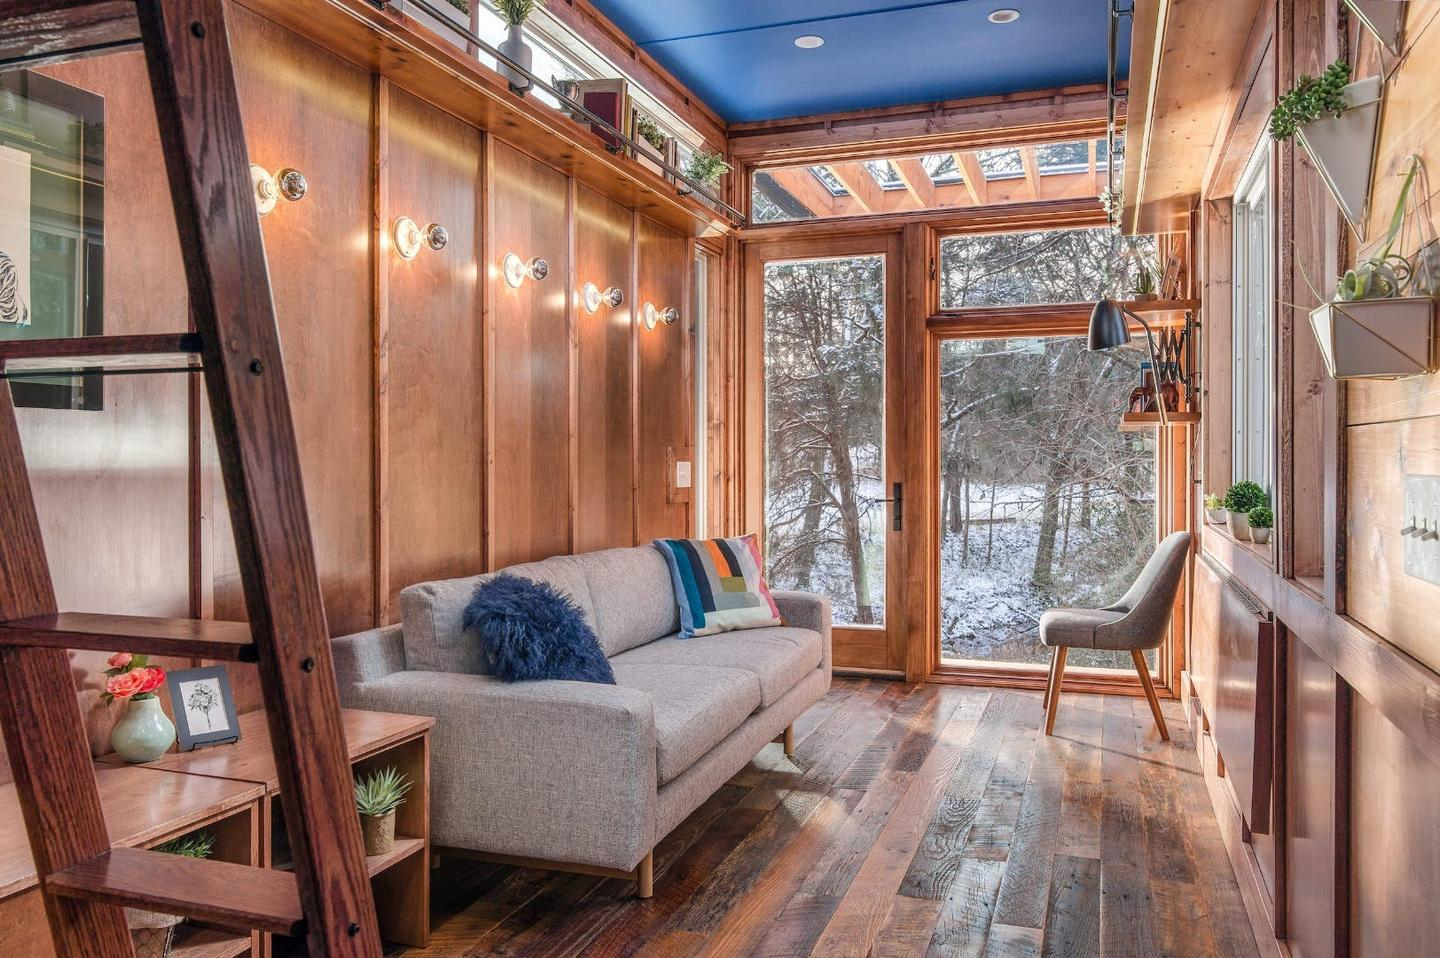 Gallery: The tiny house movement's most tasteful interiors